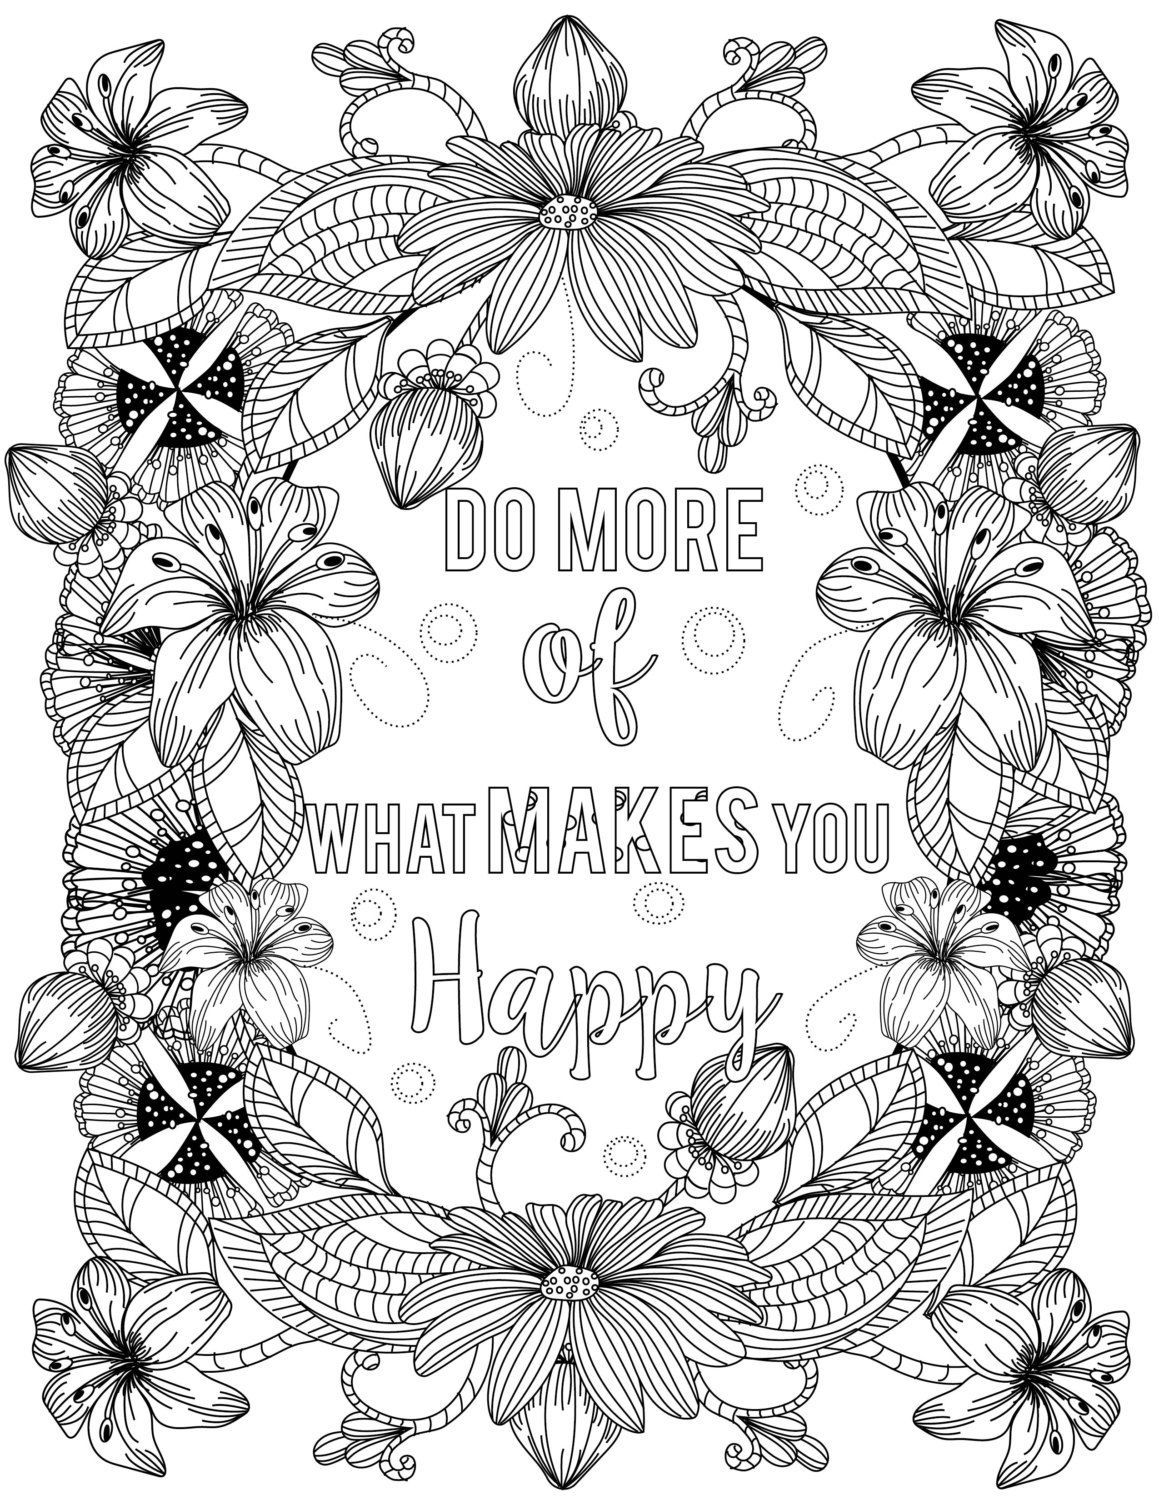 Motivational Quotes Coloring Pages In 2020